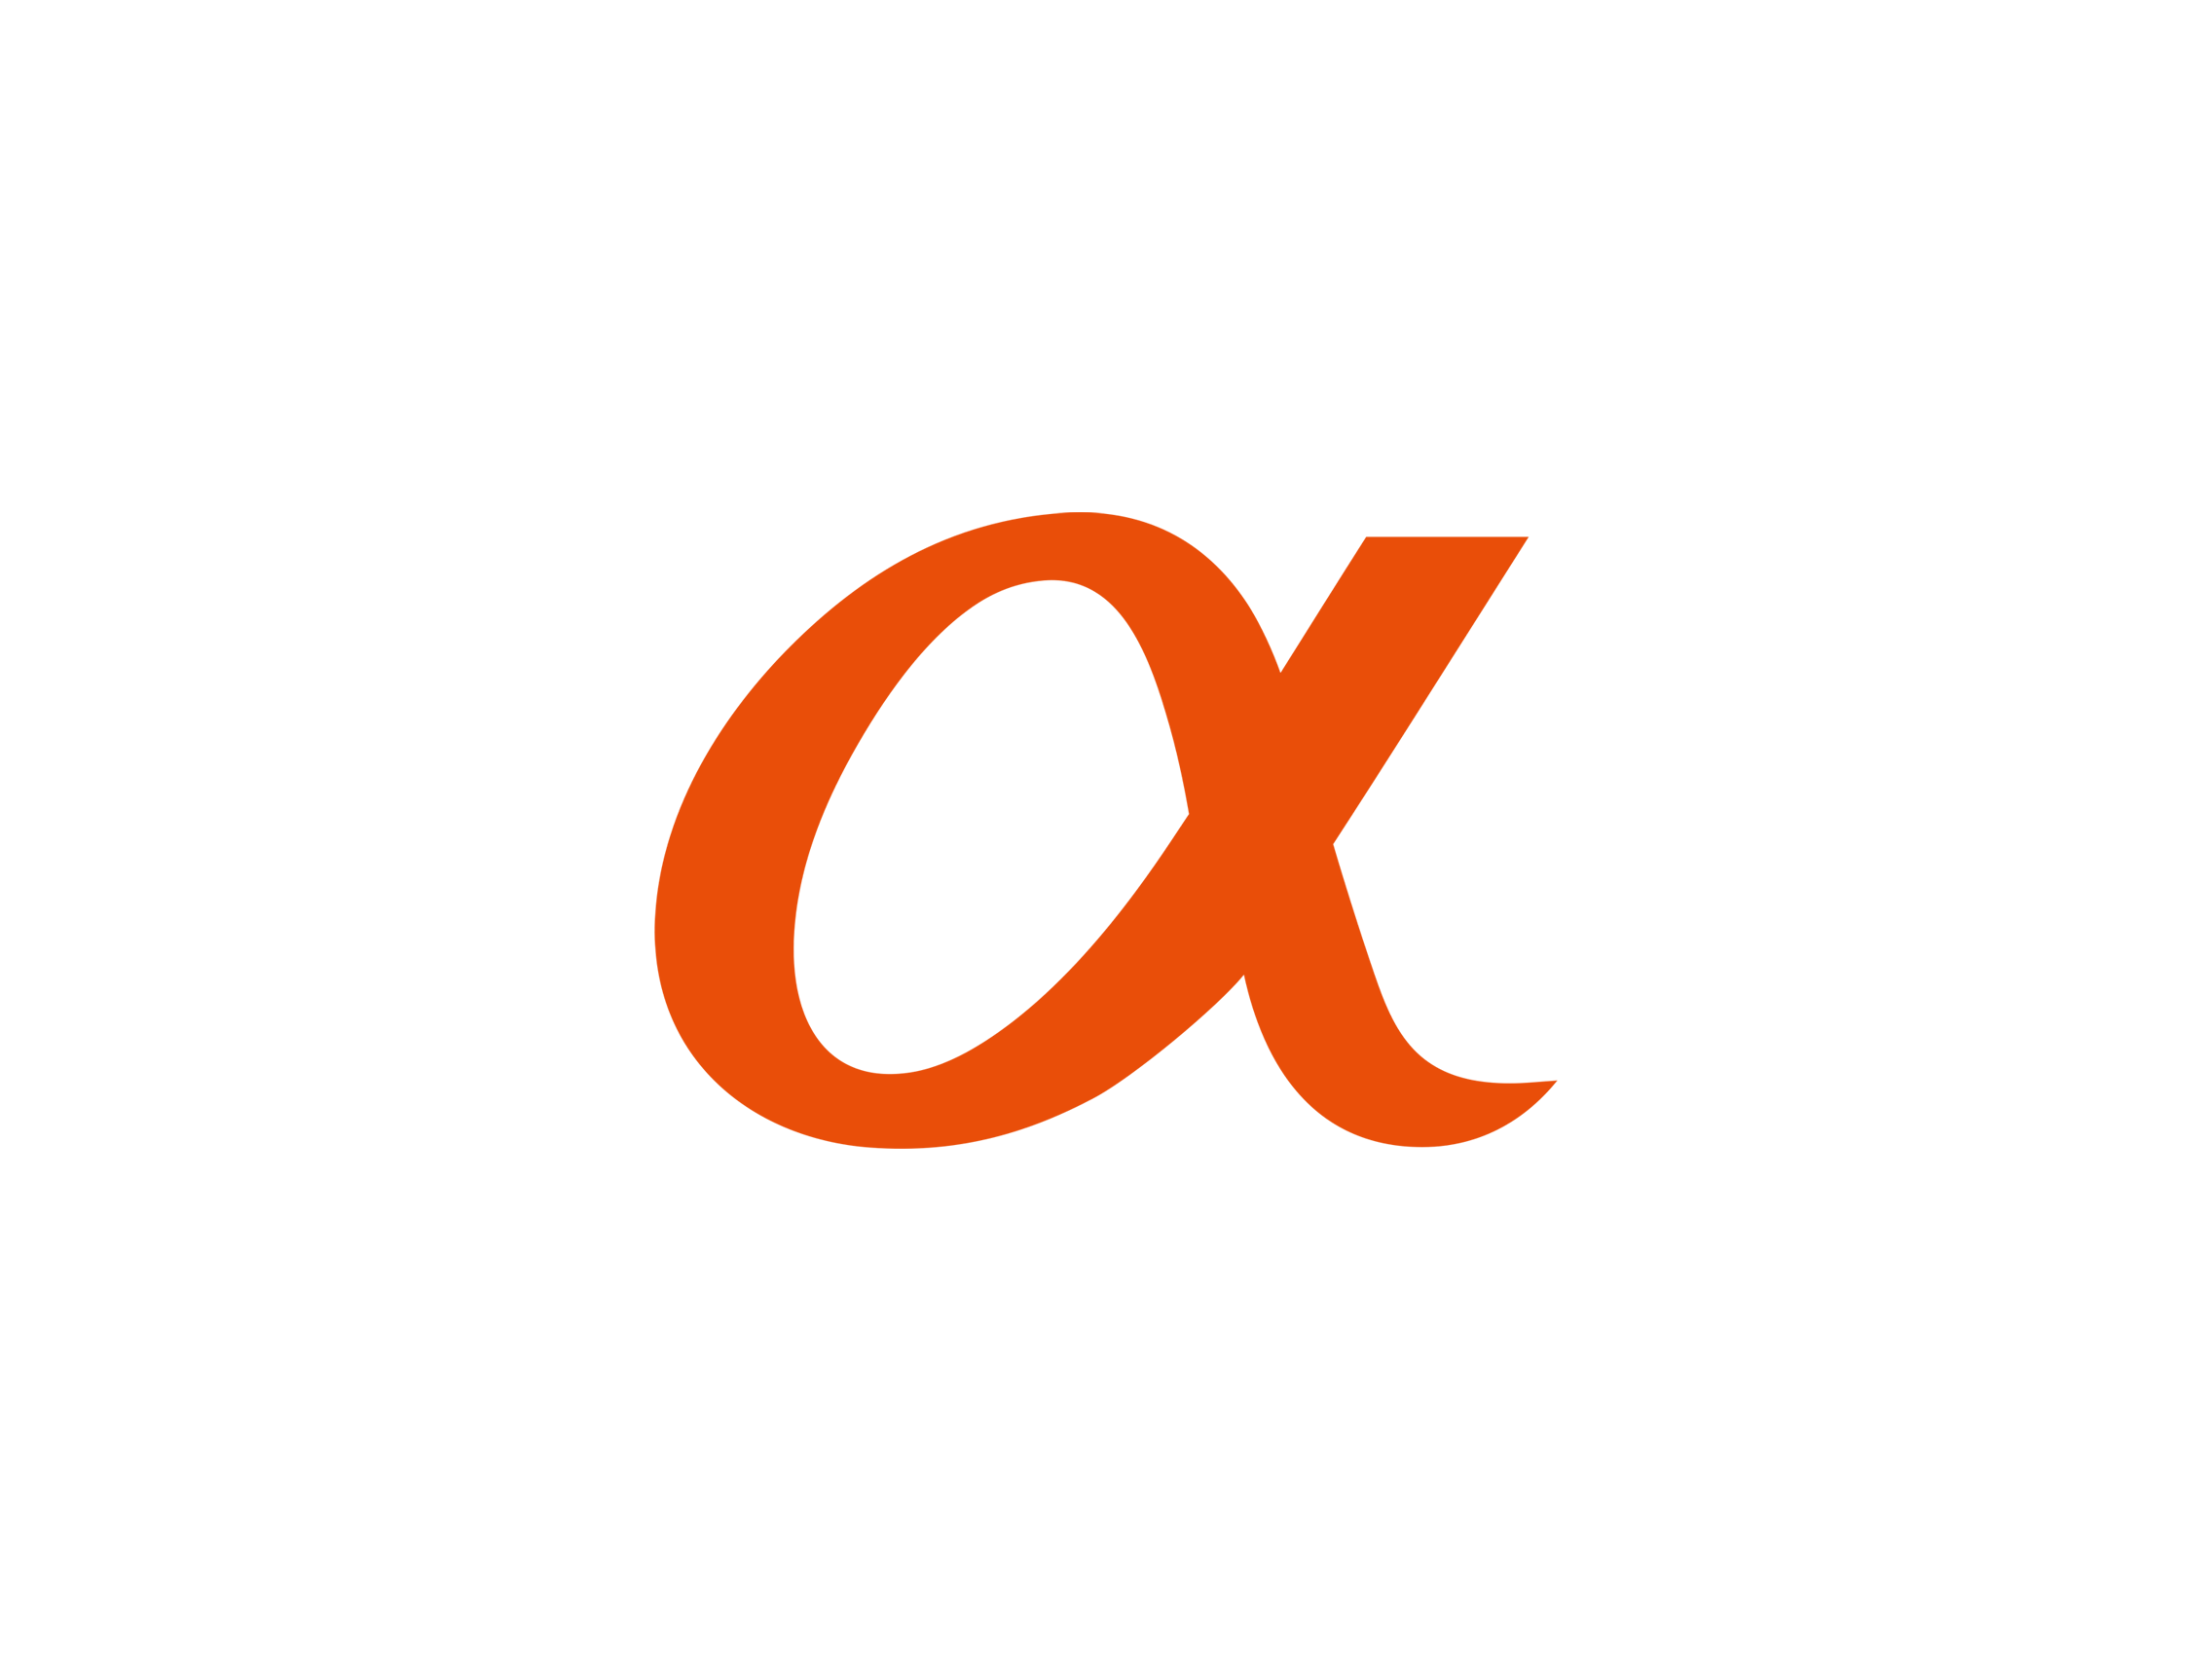 orange sony png logo #3077